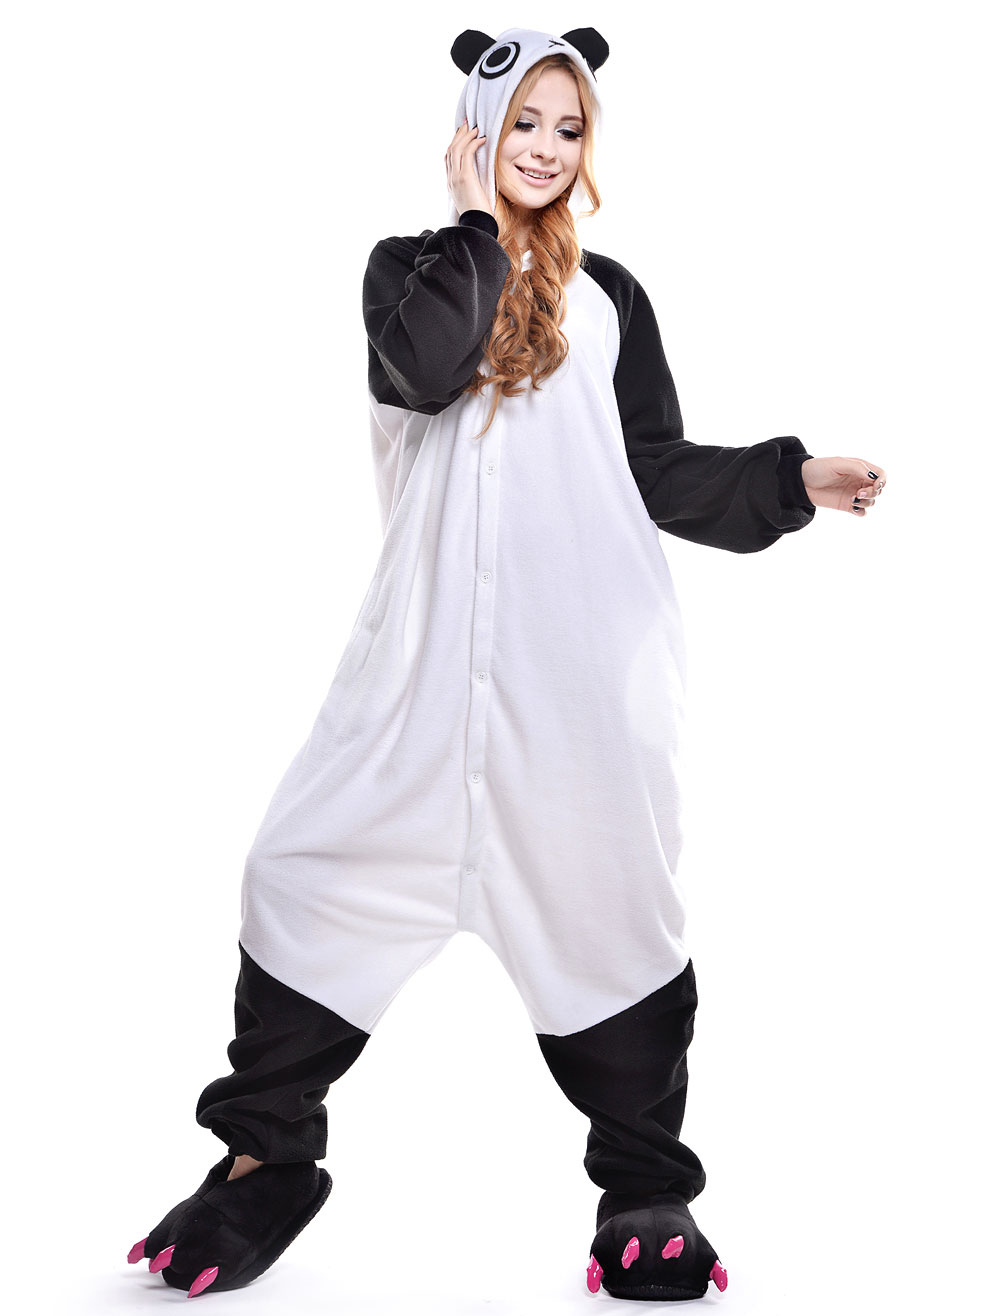 ... Kigurumi Pajama Panda Onesie For Adult fleeceFlannel Black White Animal  Costume Halloween-No.2 ... 6deb5b614d0d9